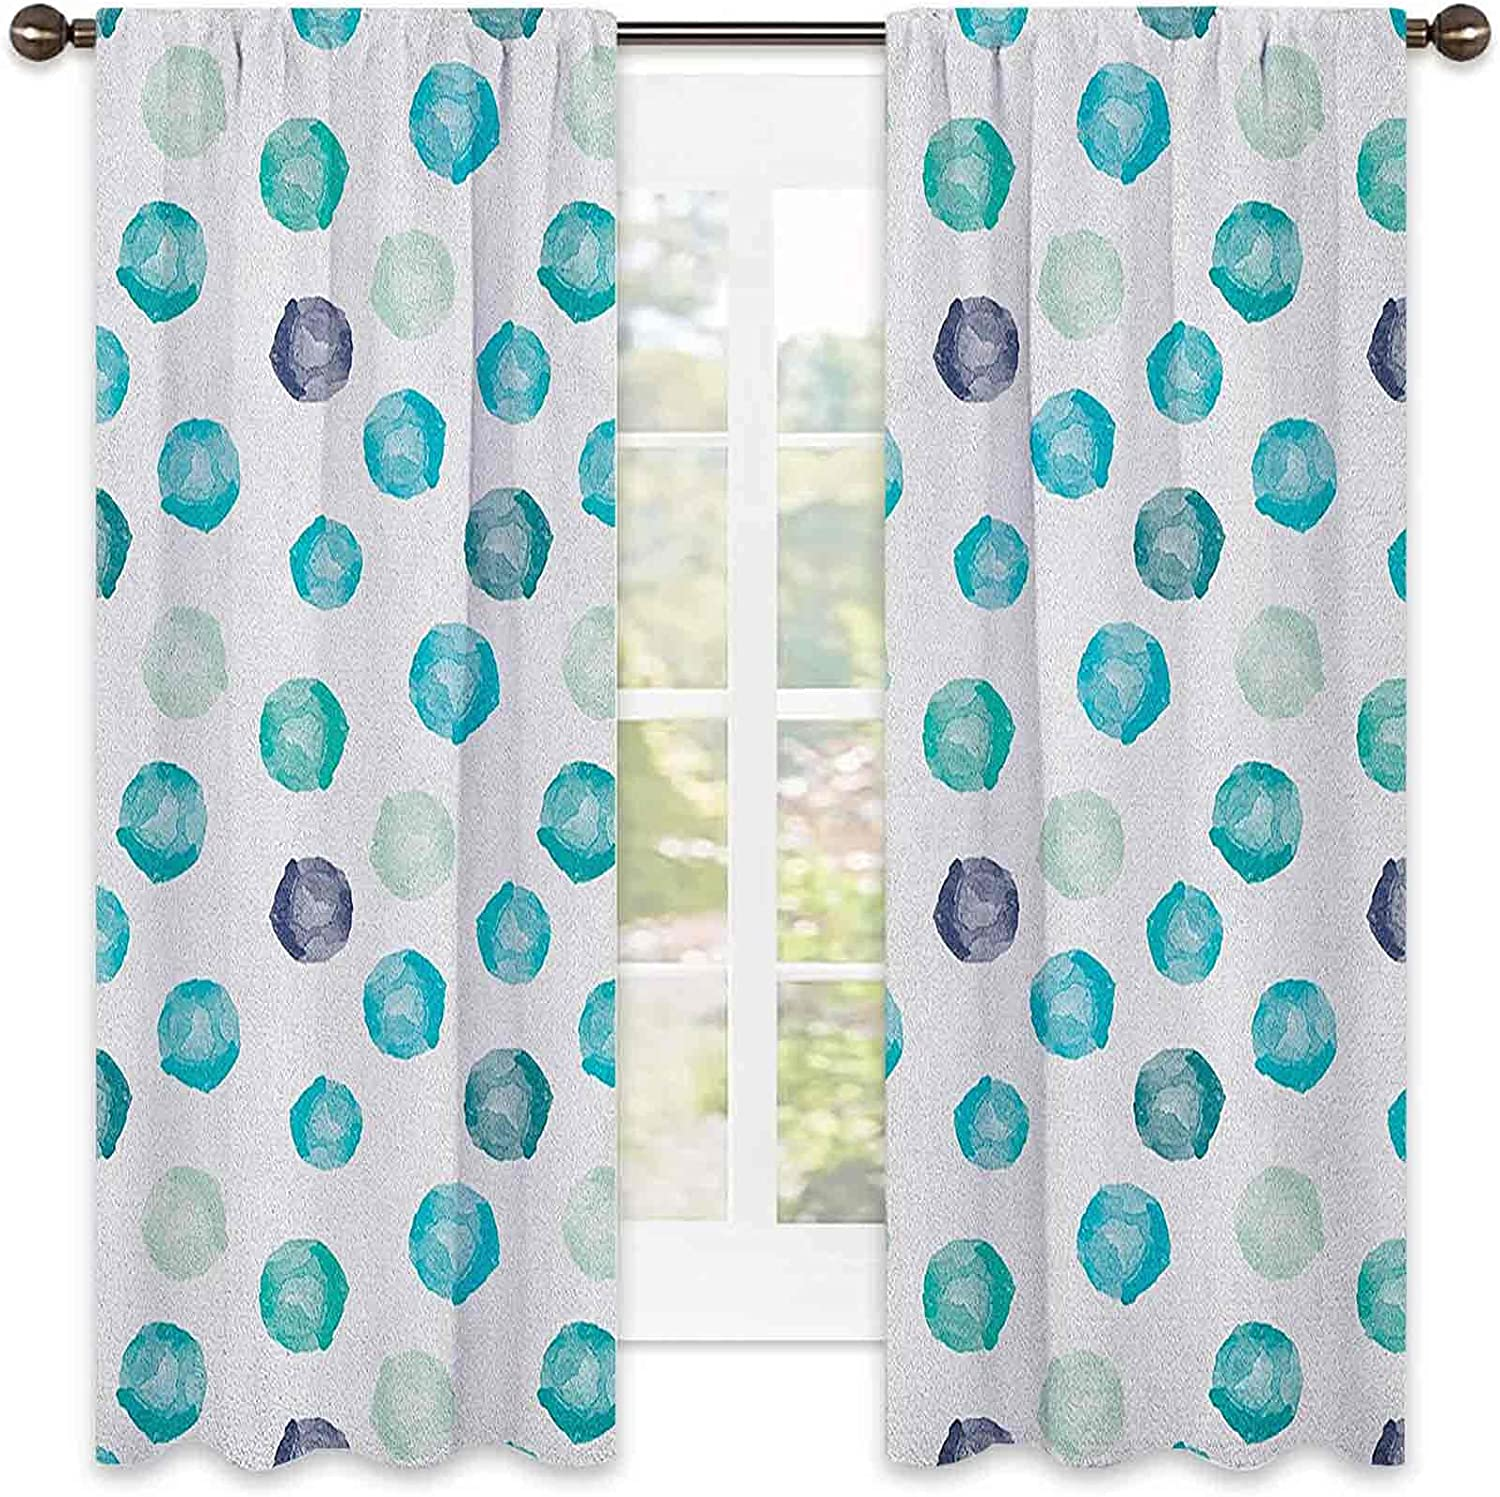 Aqua Translated Wear Resistant Color Curtain outlet Shap Painted Round Style Hand